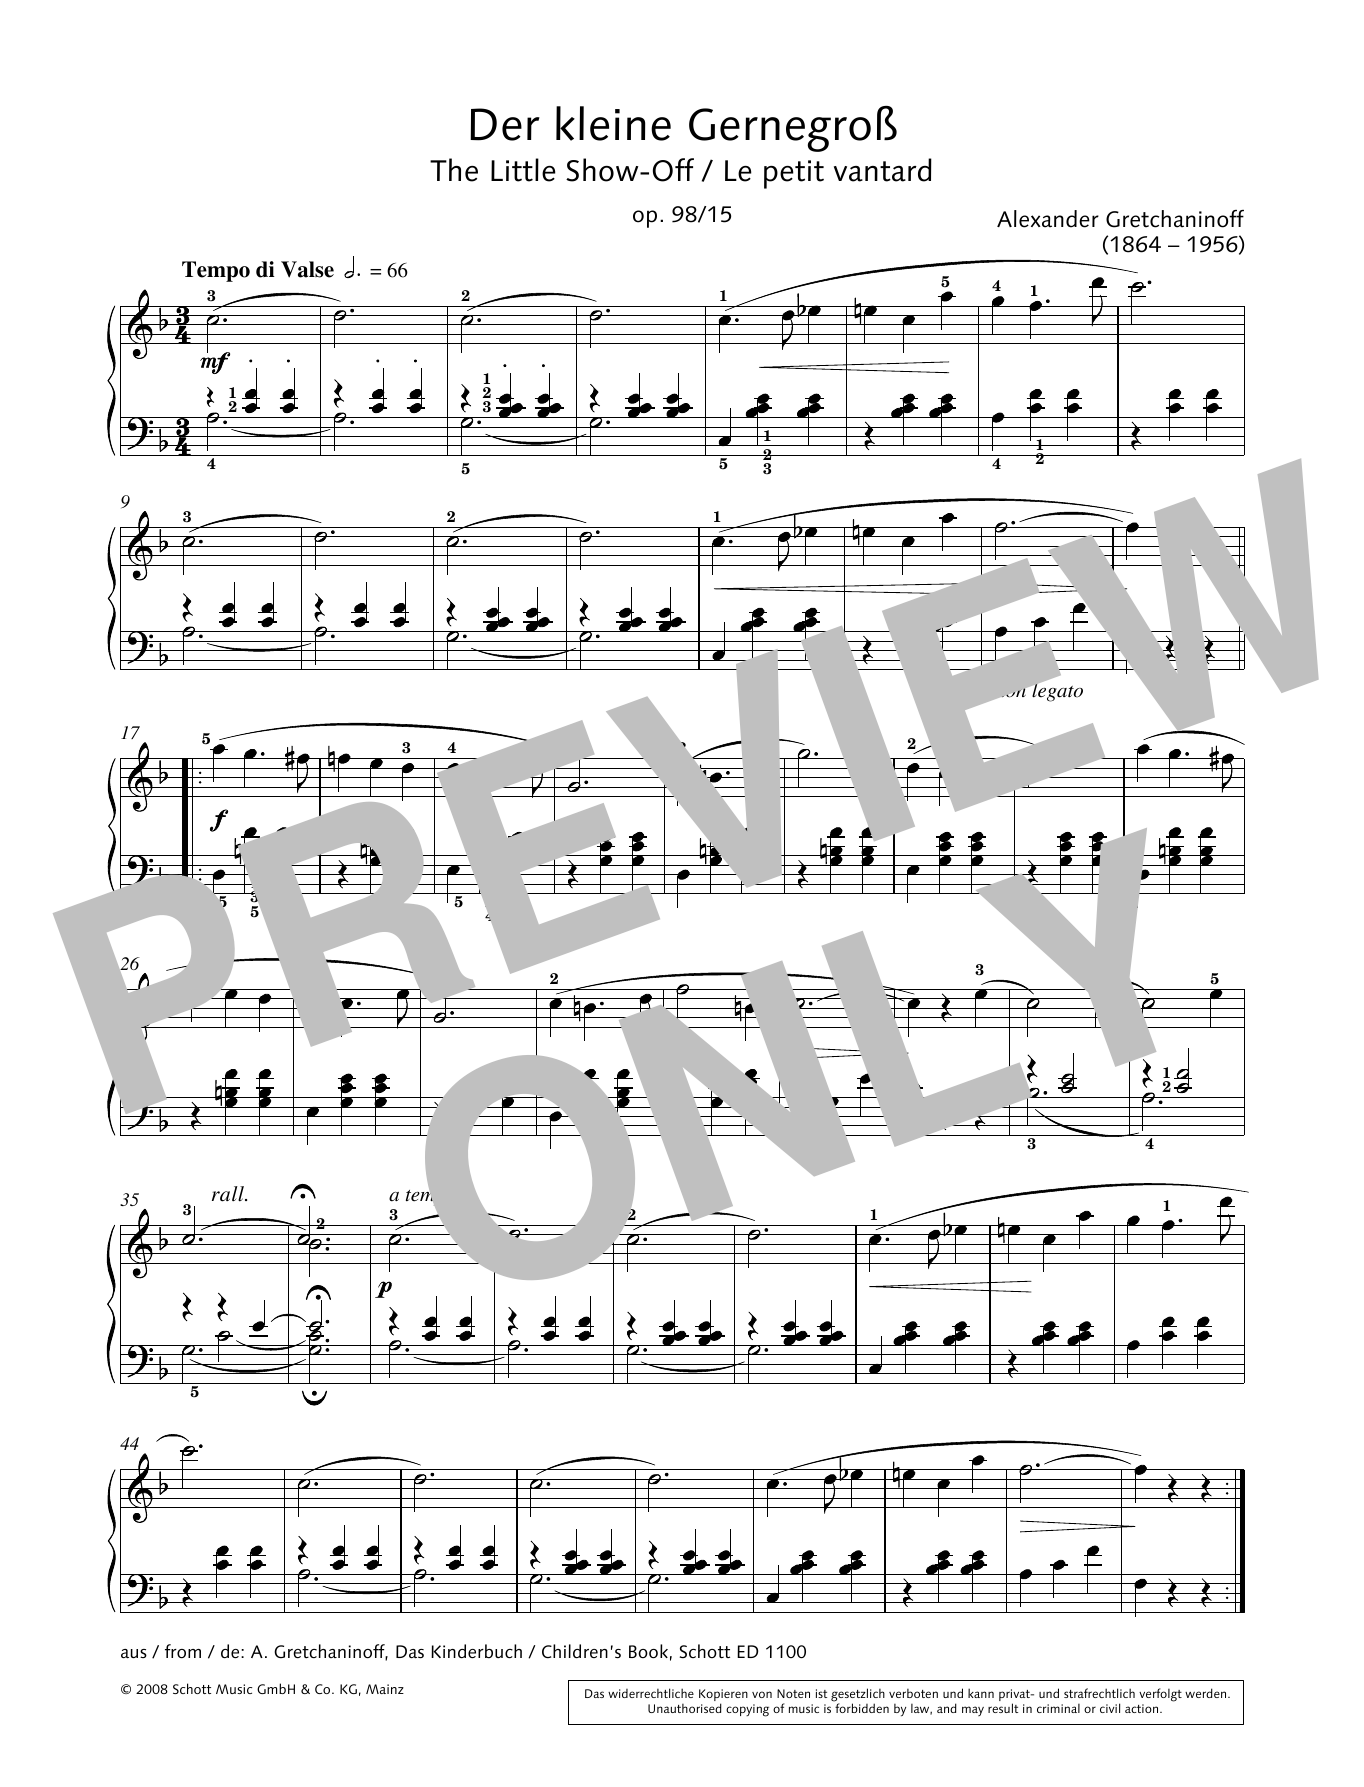 The Little Show-Off Sheet Music